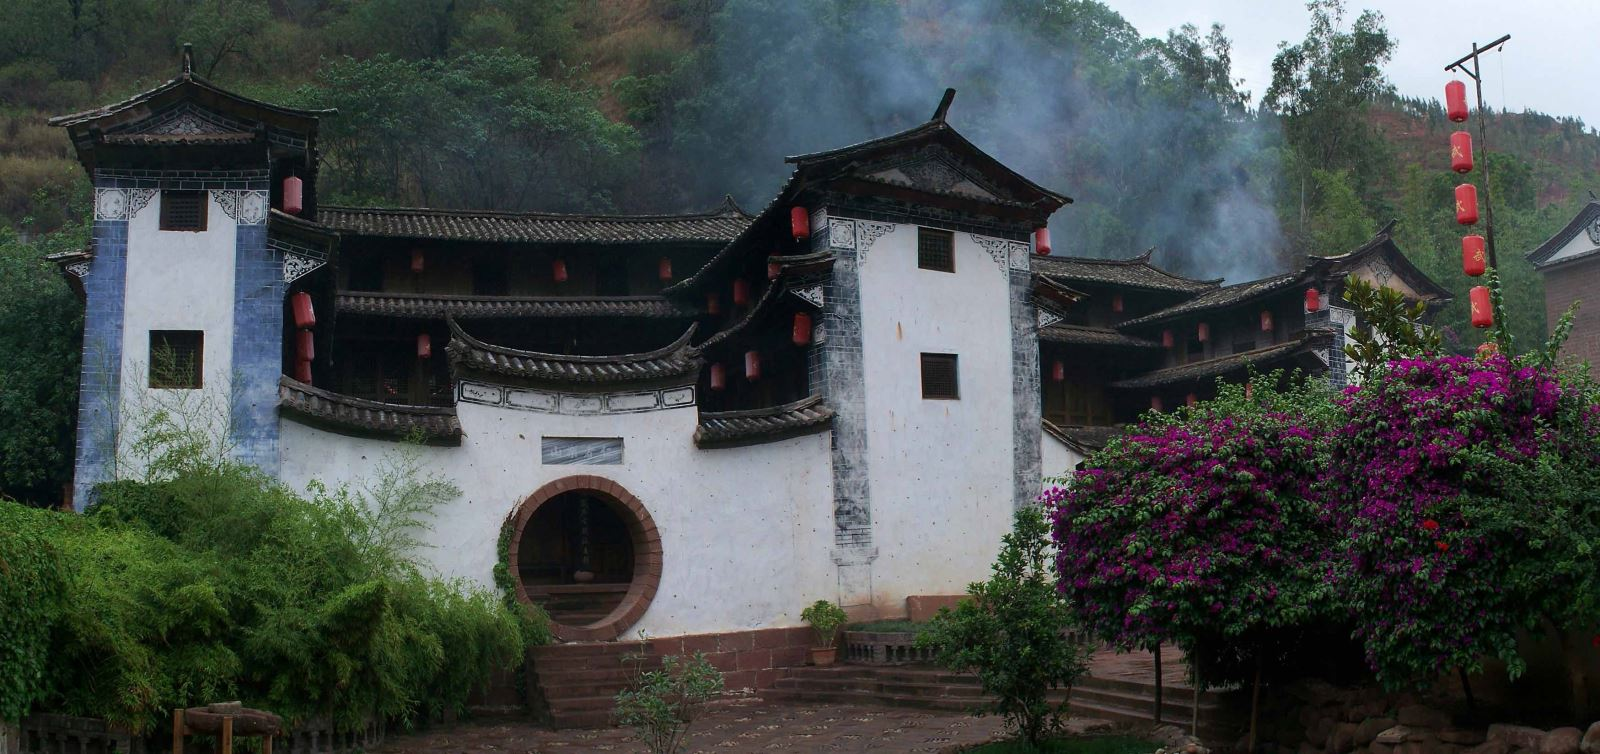 Wufamily-Compound-Backyard-in-Heijing-Ancient-Town